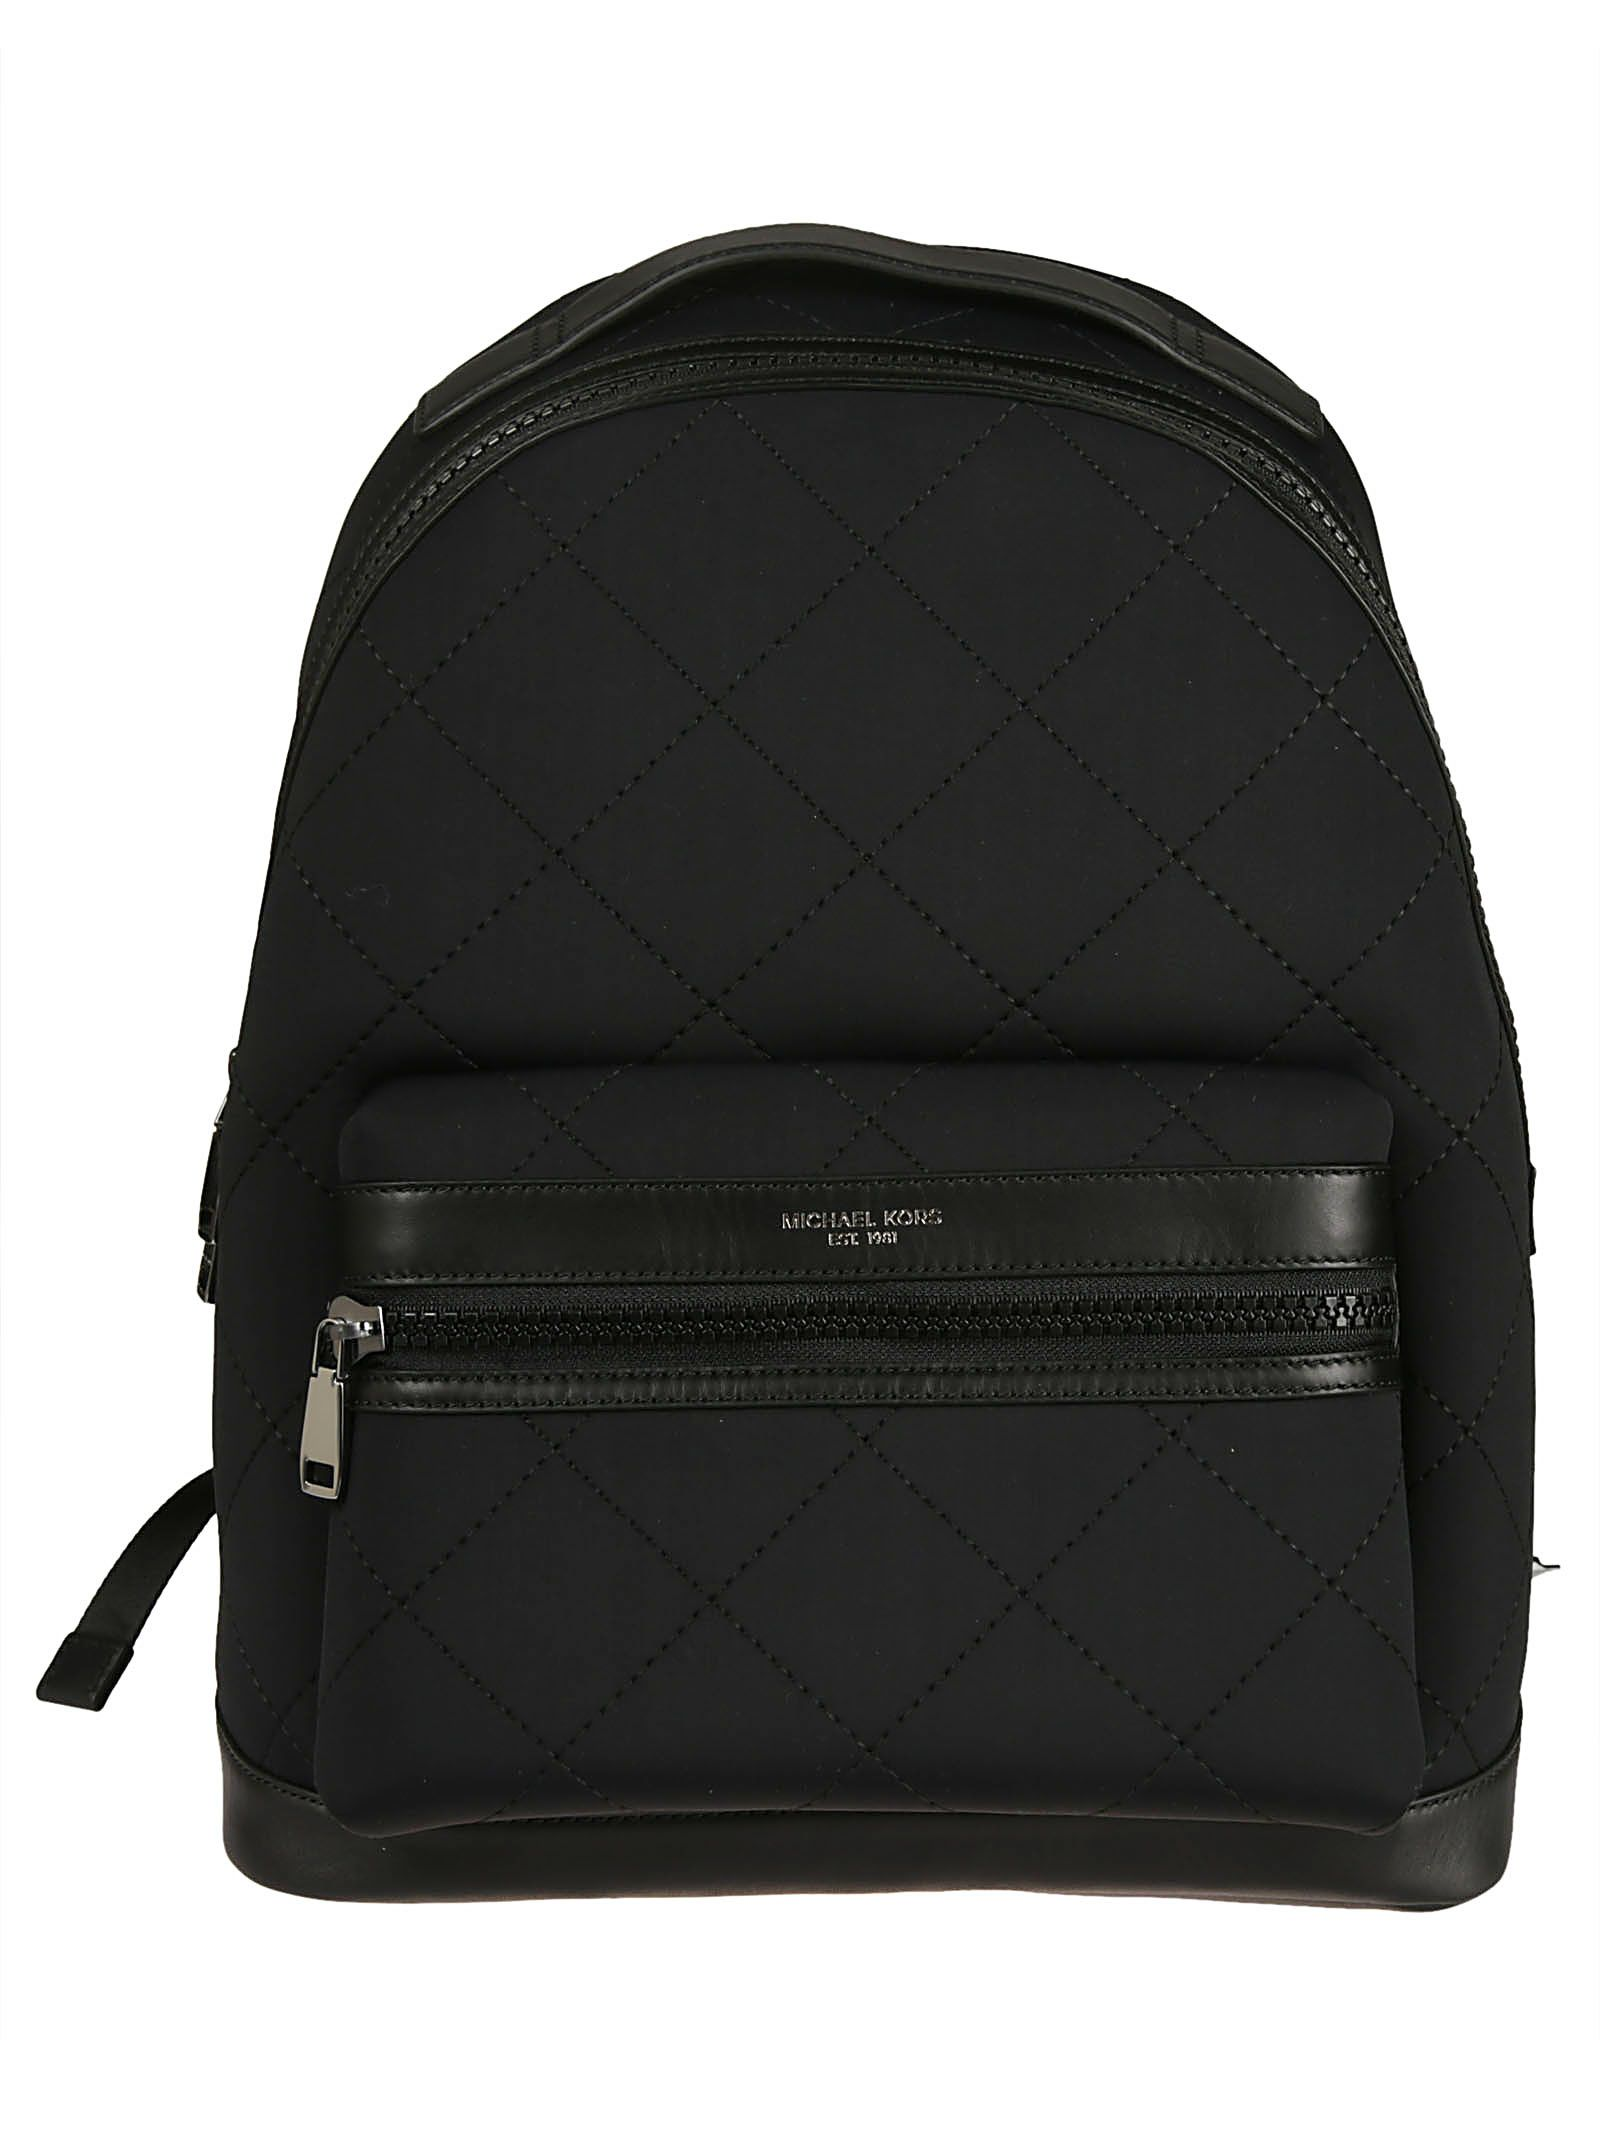 8d1014cc5014 Michael Kors Michael Kors Quilted Backpack - black - 10700331 | italist